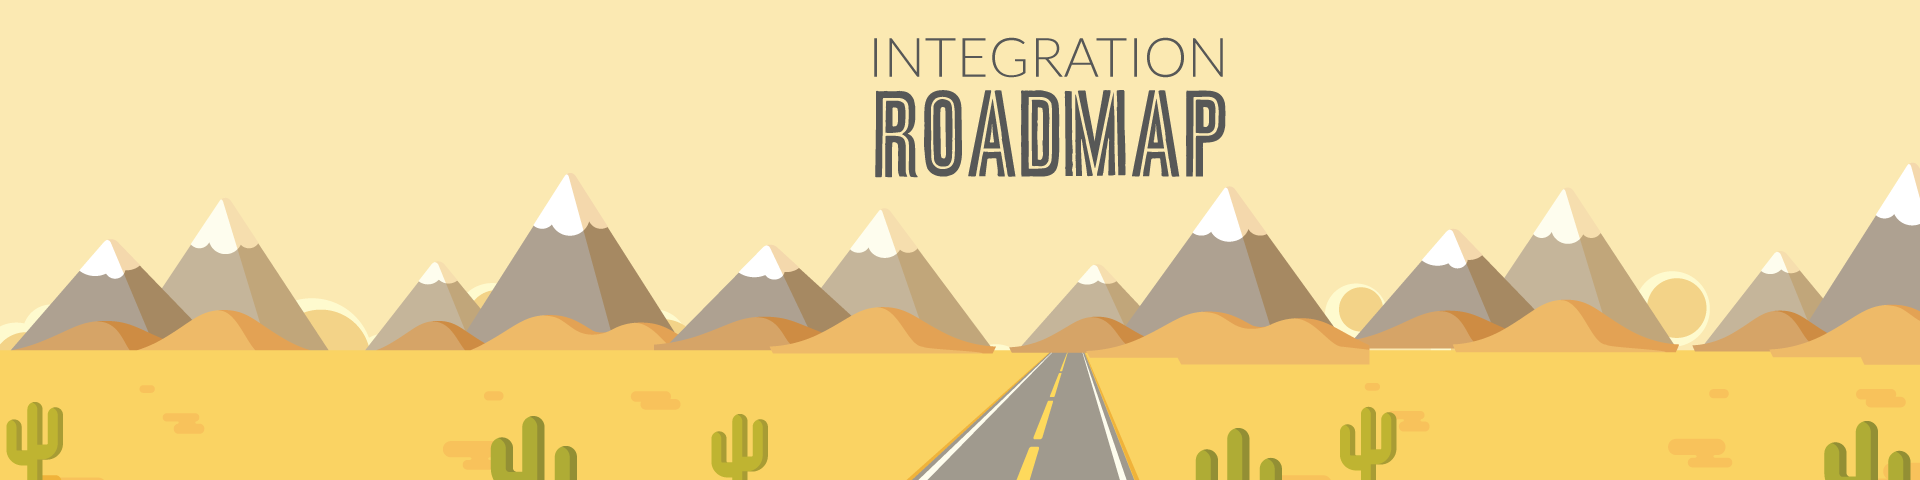 Integration Roadmap